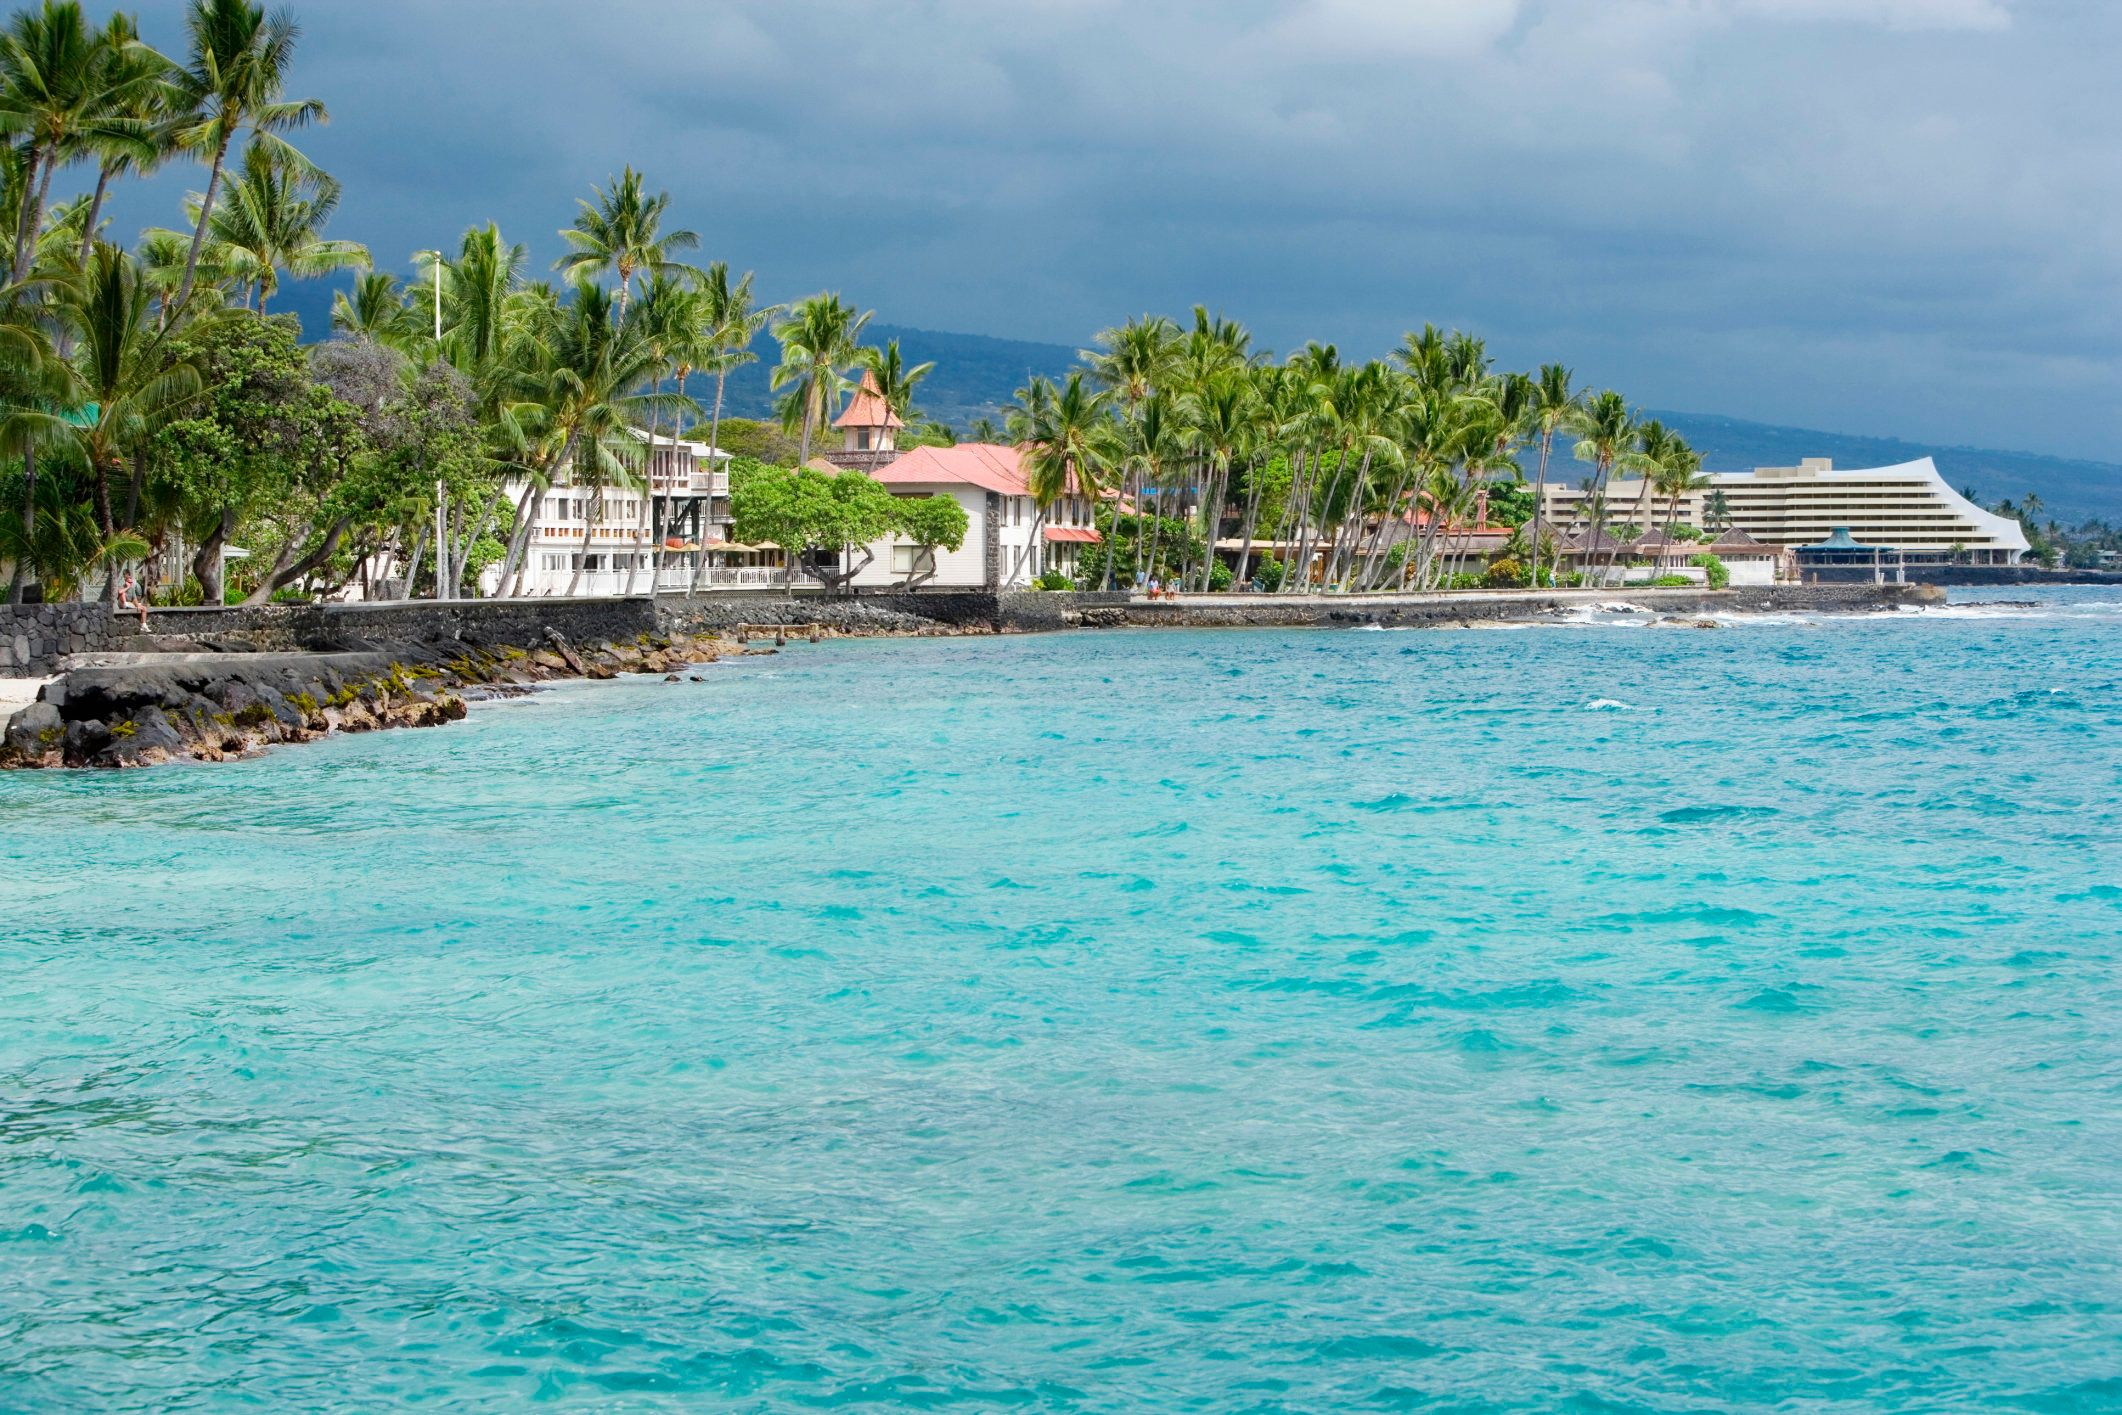 "This <a href=""http://www.tripadvisor.com/Tourism-g60872-Kailua_Kona_Island_of_Hawaii_Hawaii-Vacations.html"">historic fishing"